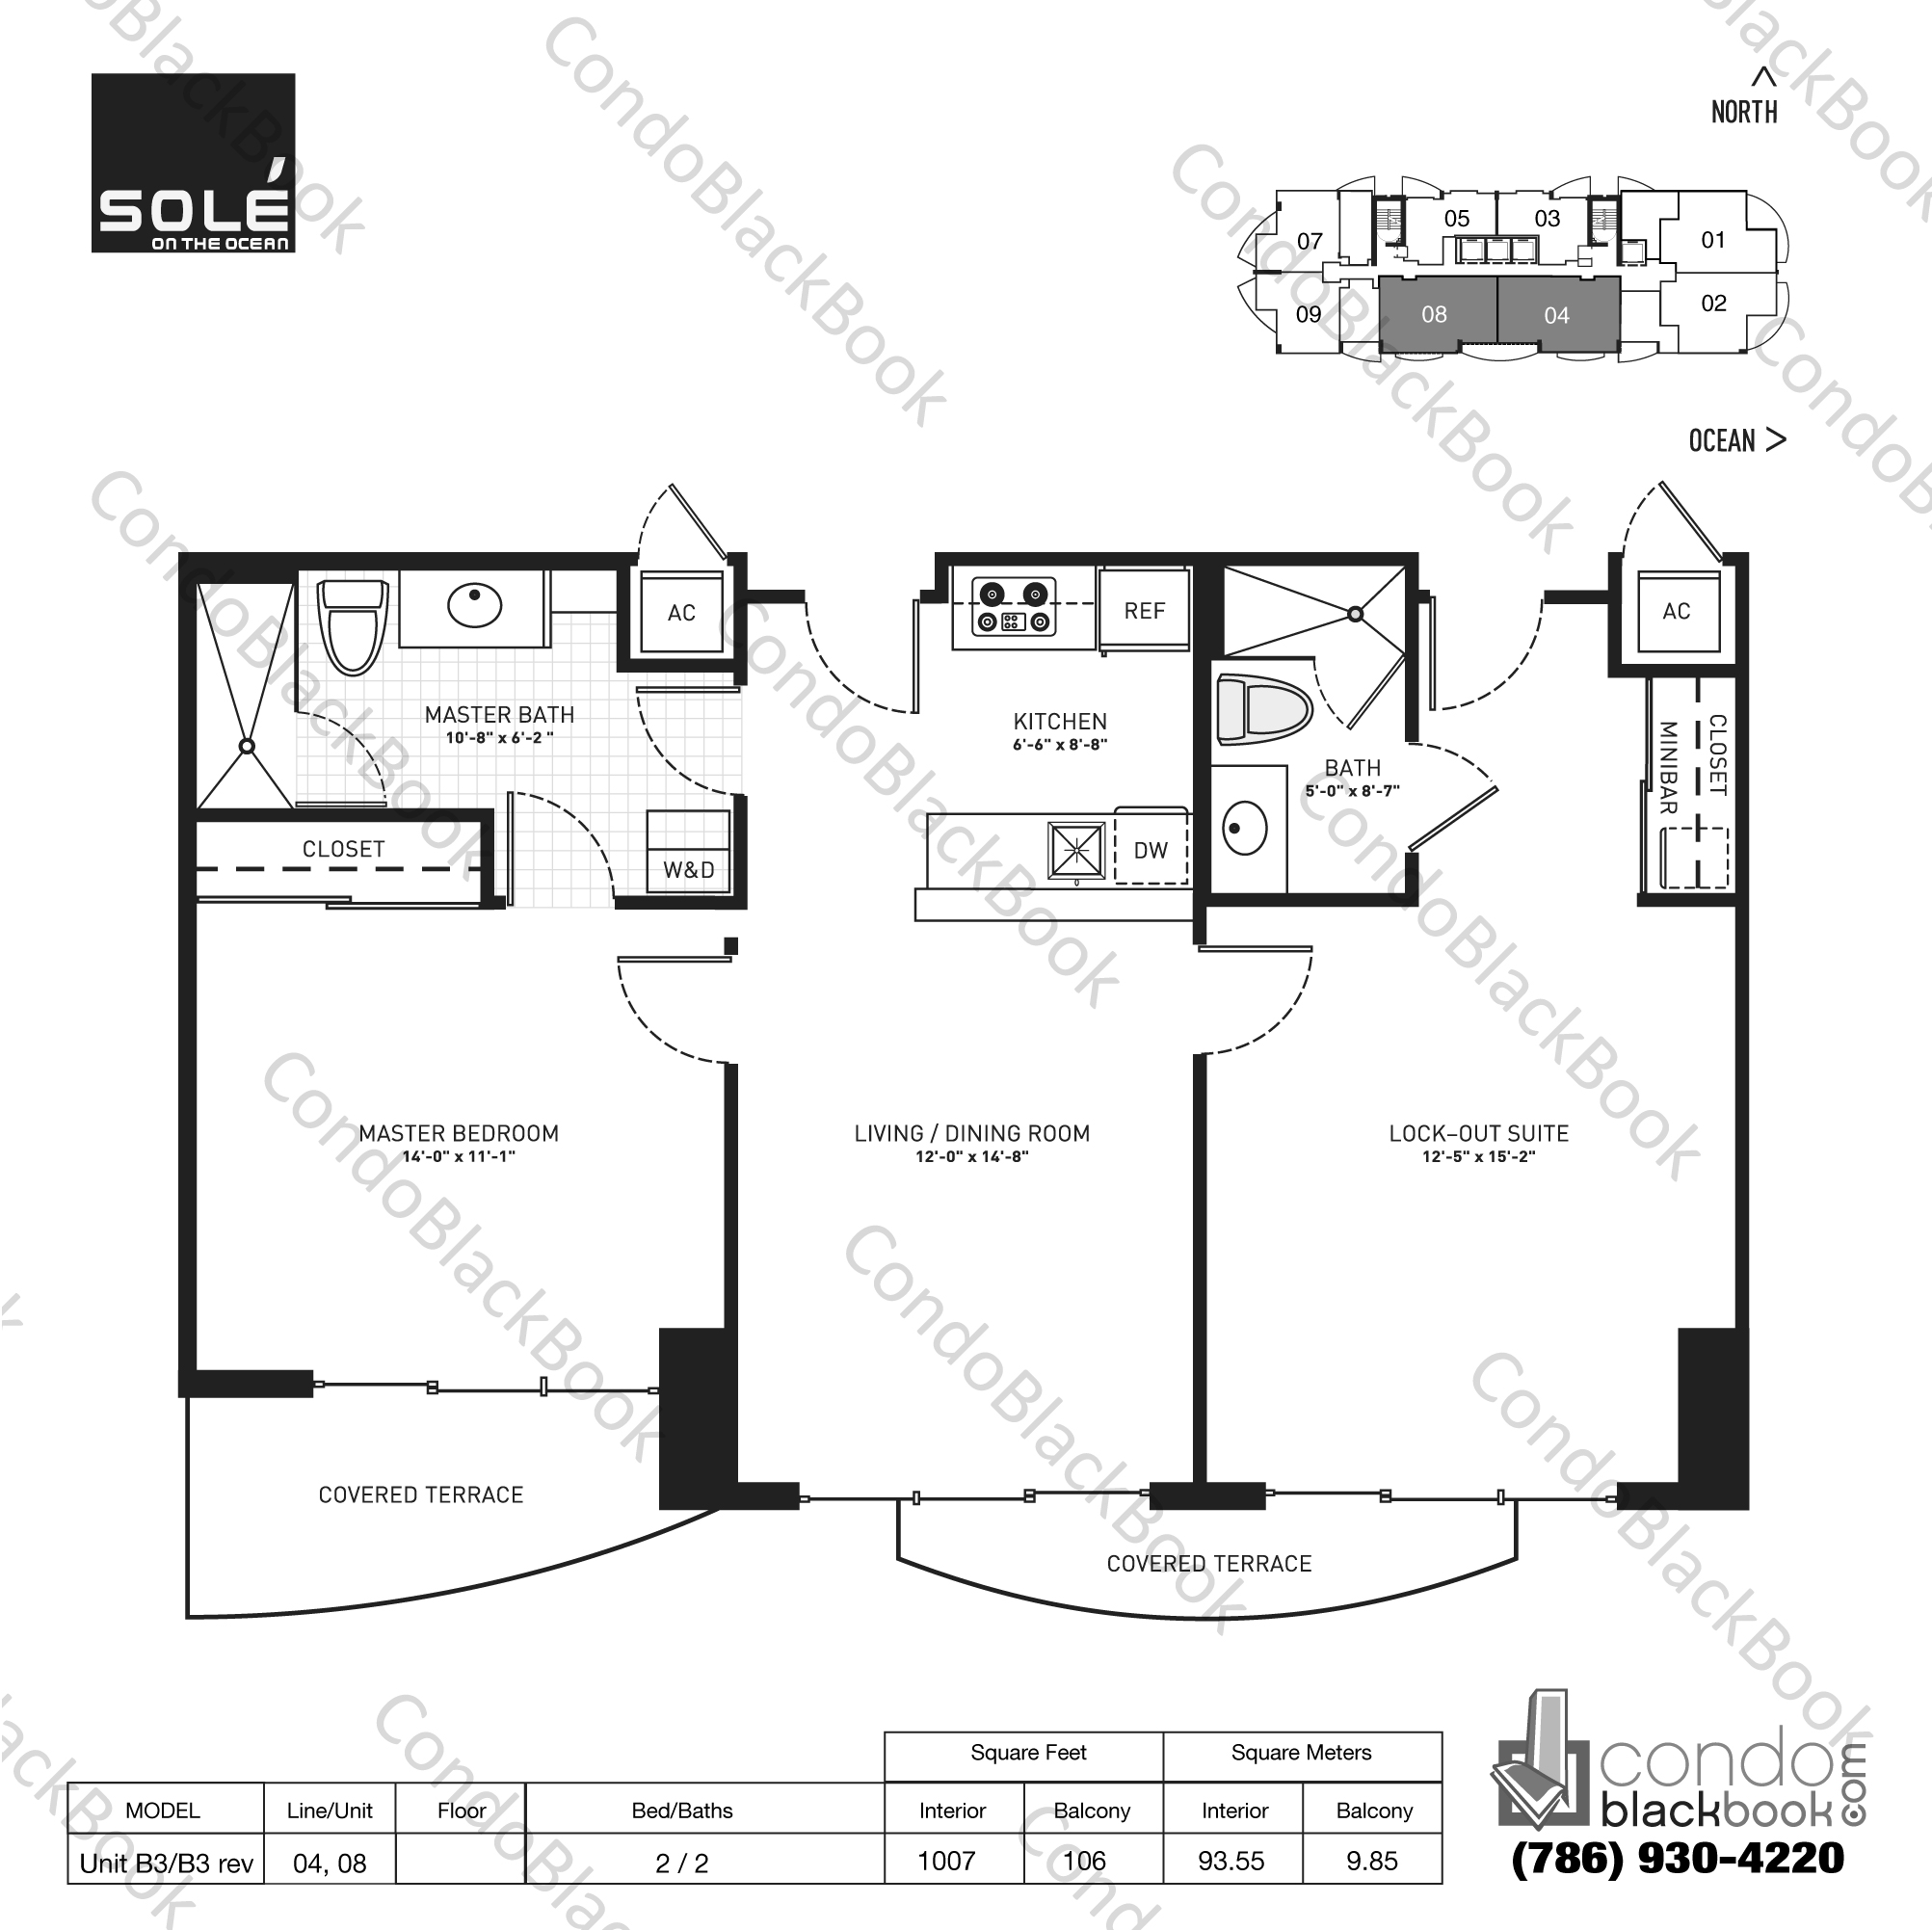 Floor plan for Sole Sunny Isles Beach, model Unit B3/B3 rev, line 04,08, 2 / 2 bedrooms, 1007 sq ft